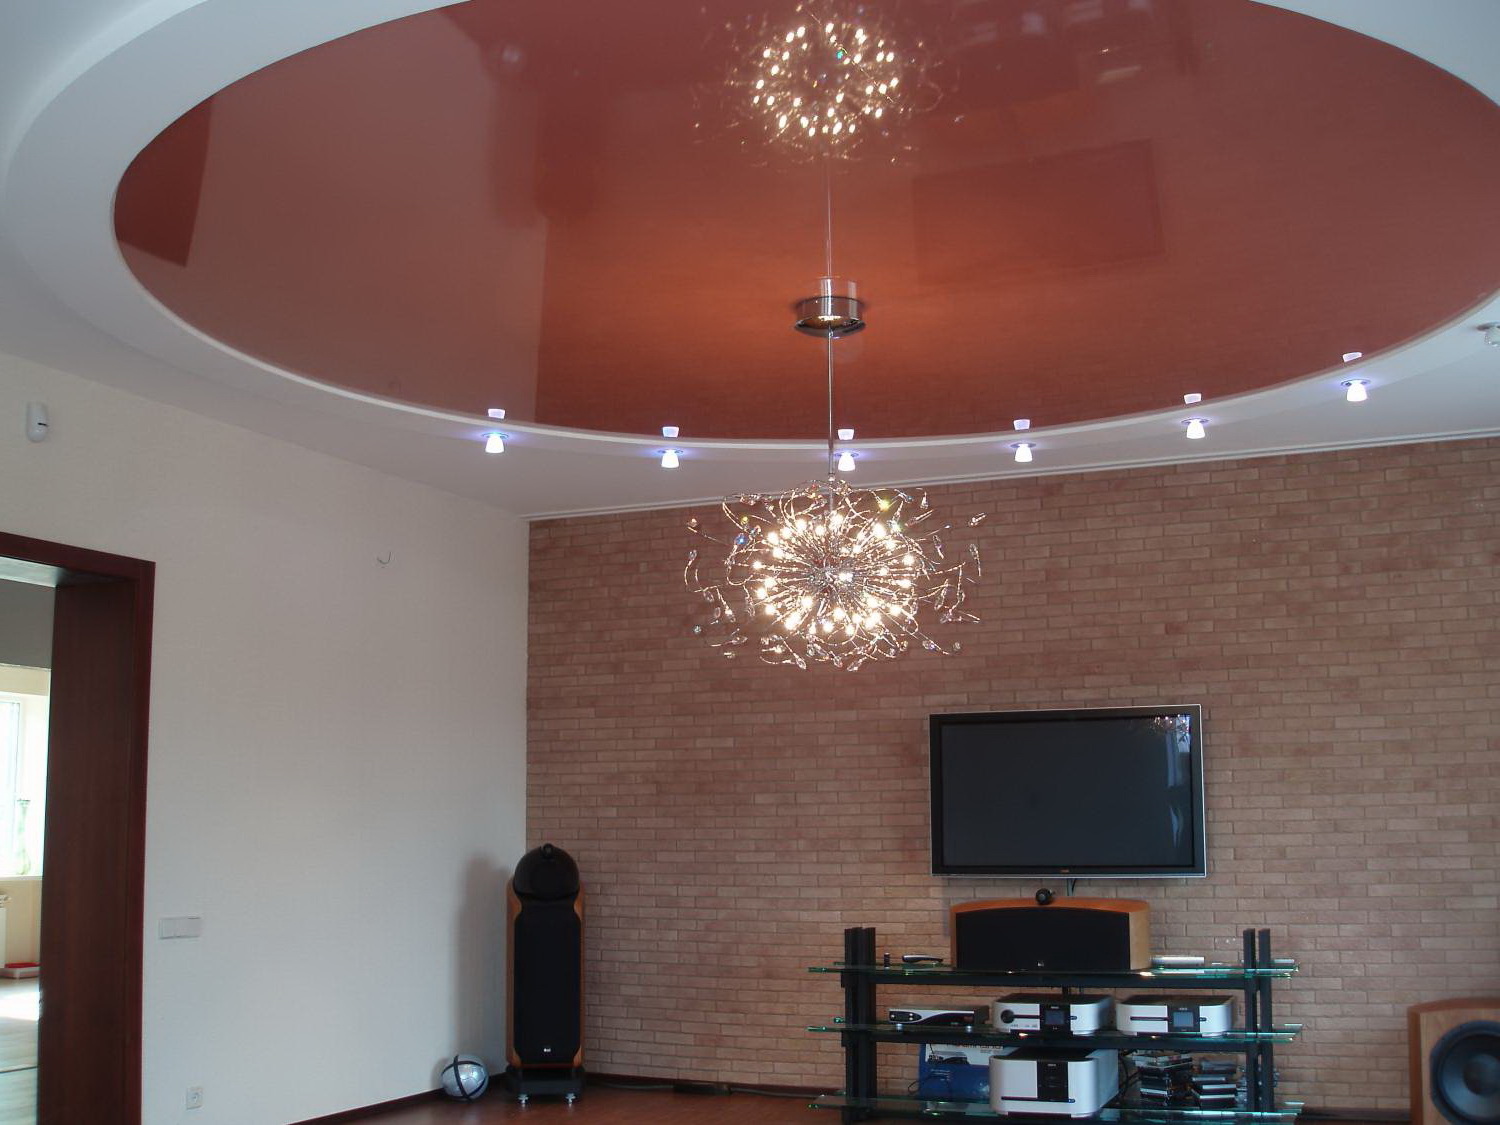 Stretch ceiling in the design of the living room with a pendant lamp